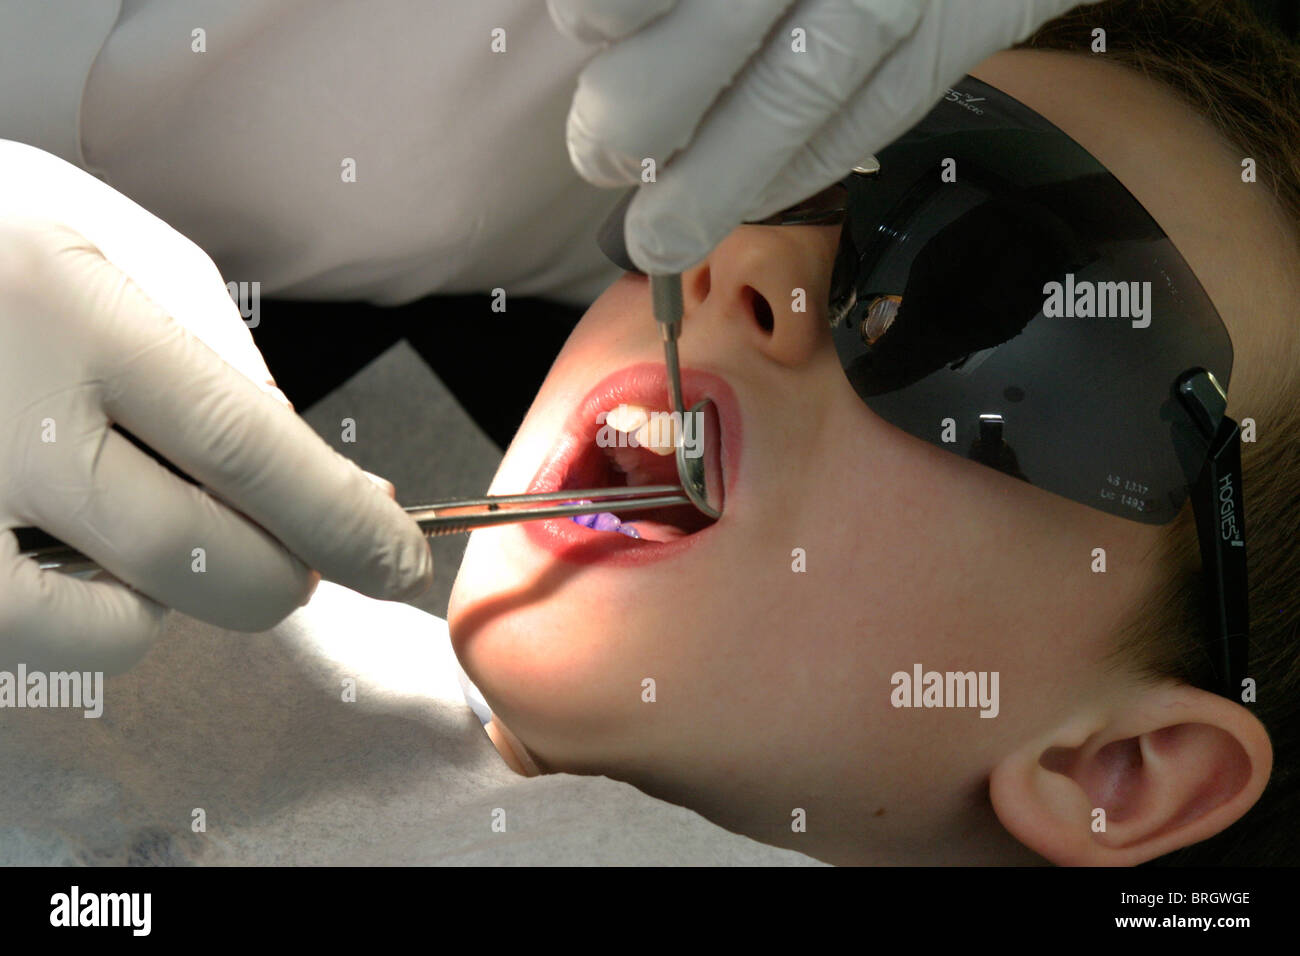 Young child having teeth inspected and worked on by dentist - Stock Image